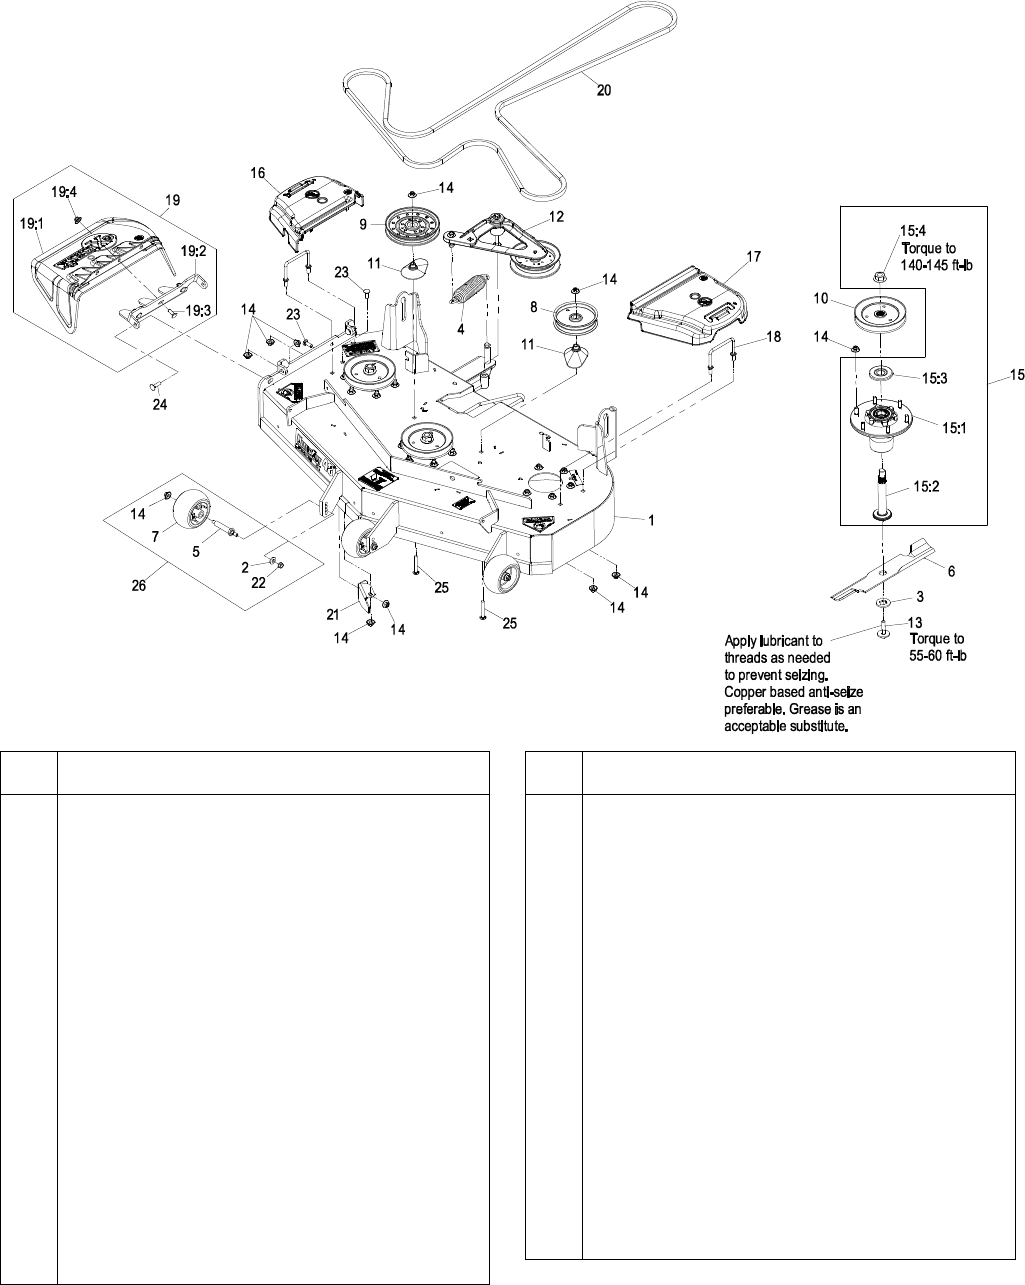 Exmark Lazer Z Lawn Mower Lhp4820kc Users Manual 4500 567 Laser Wiring Diagram 48 Deck Group